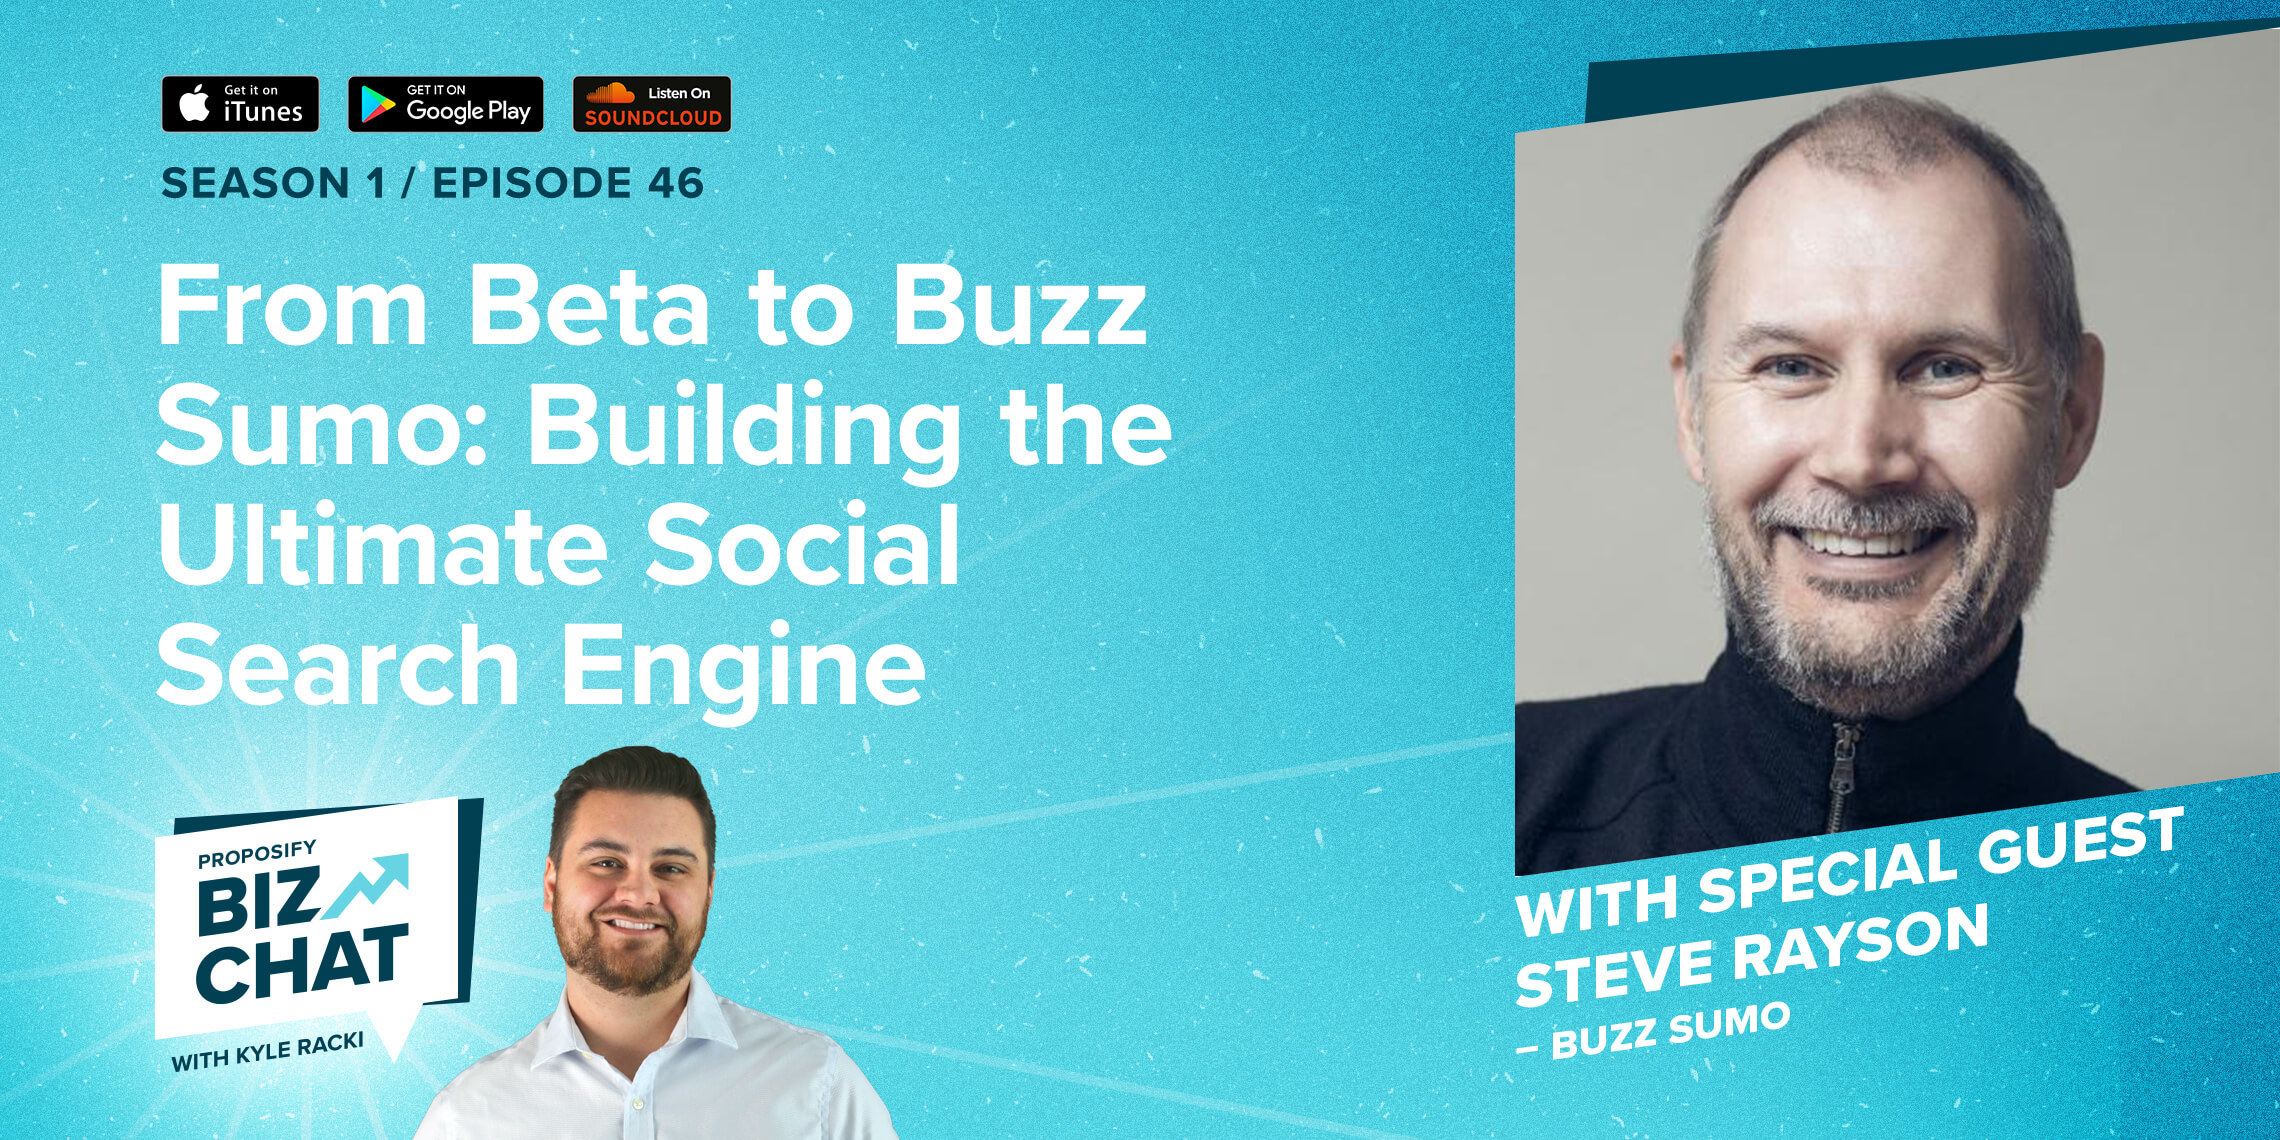 From Beta to Buzz Sumo: Building the Ultimate Social Search Engine